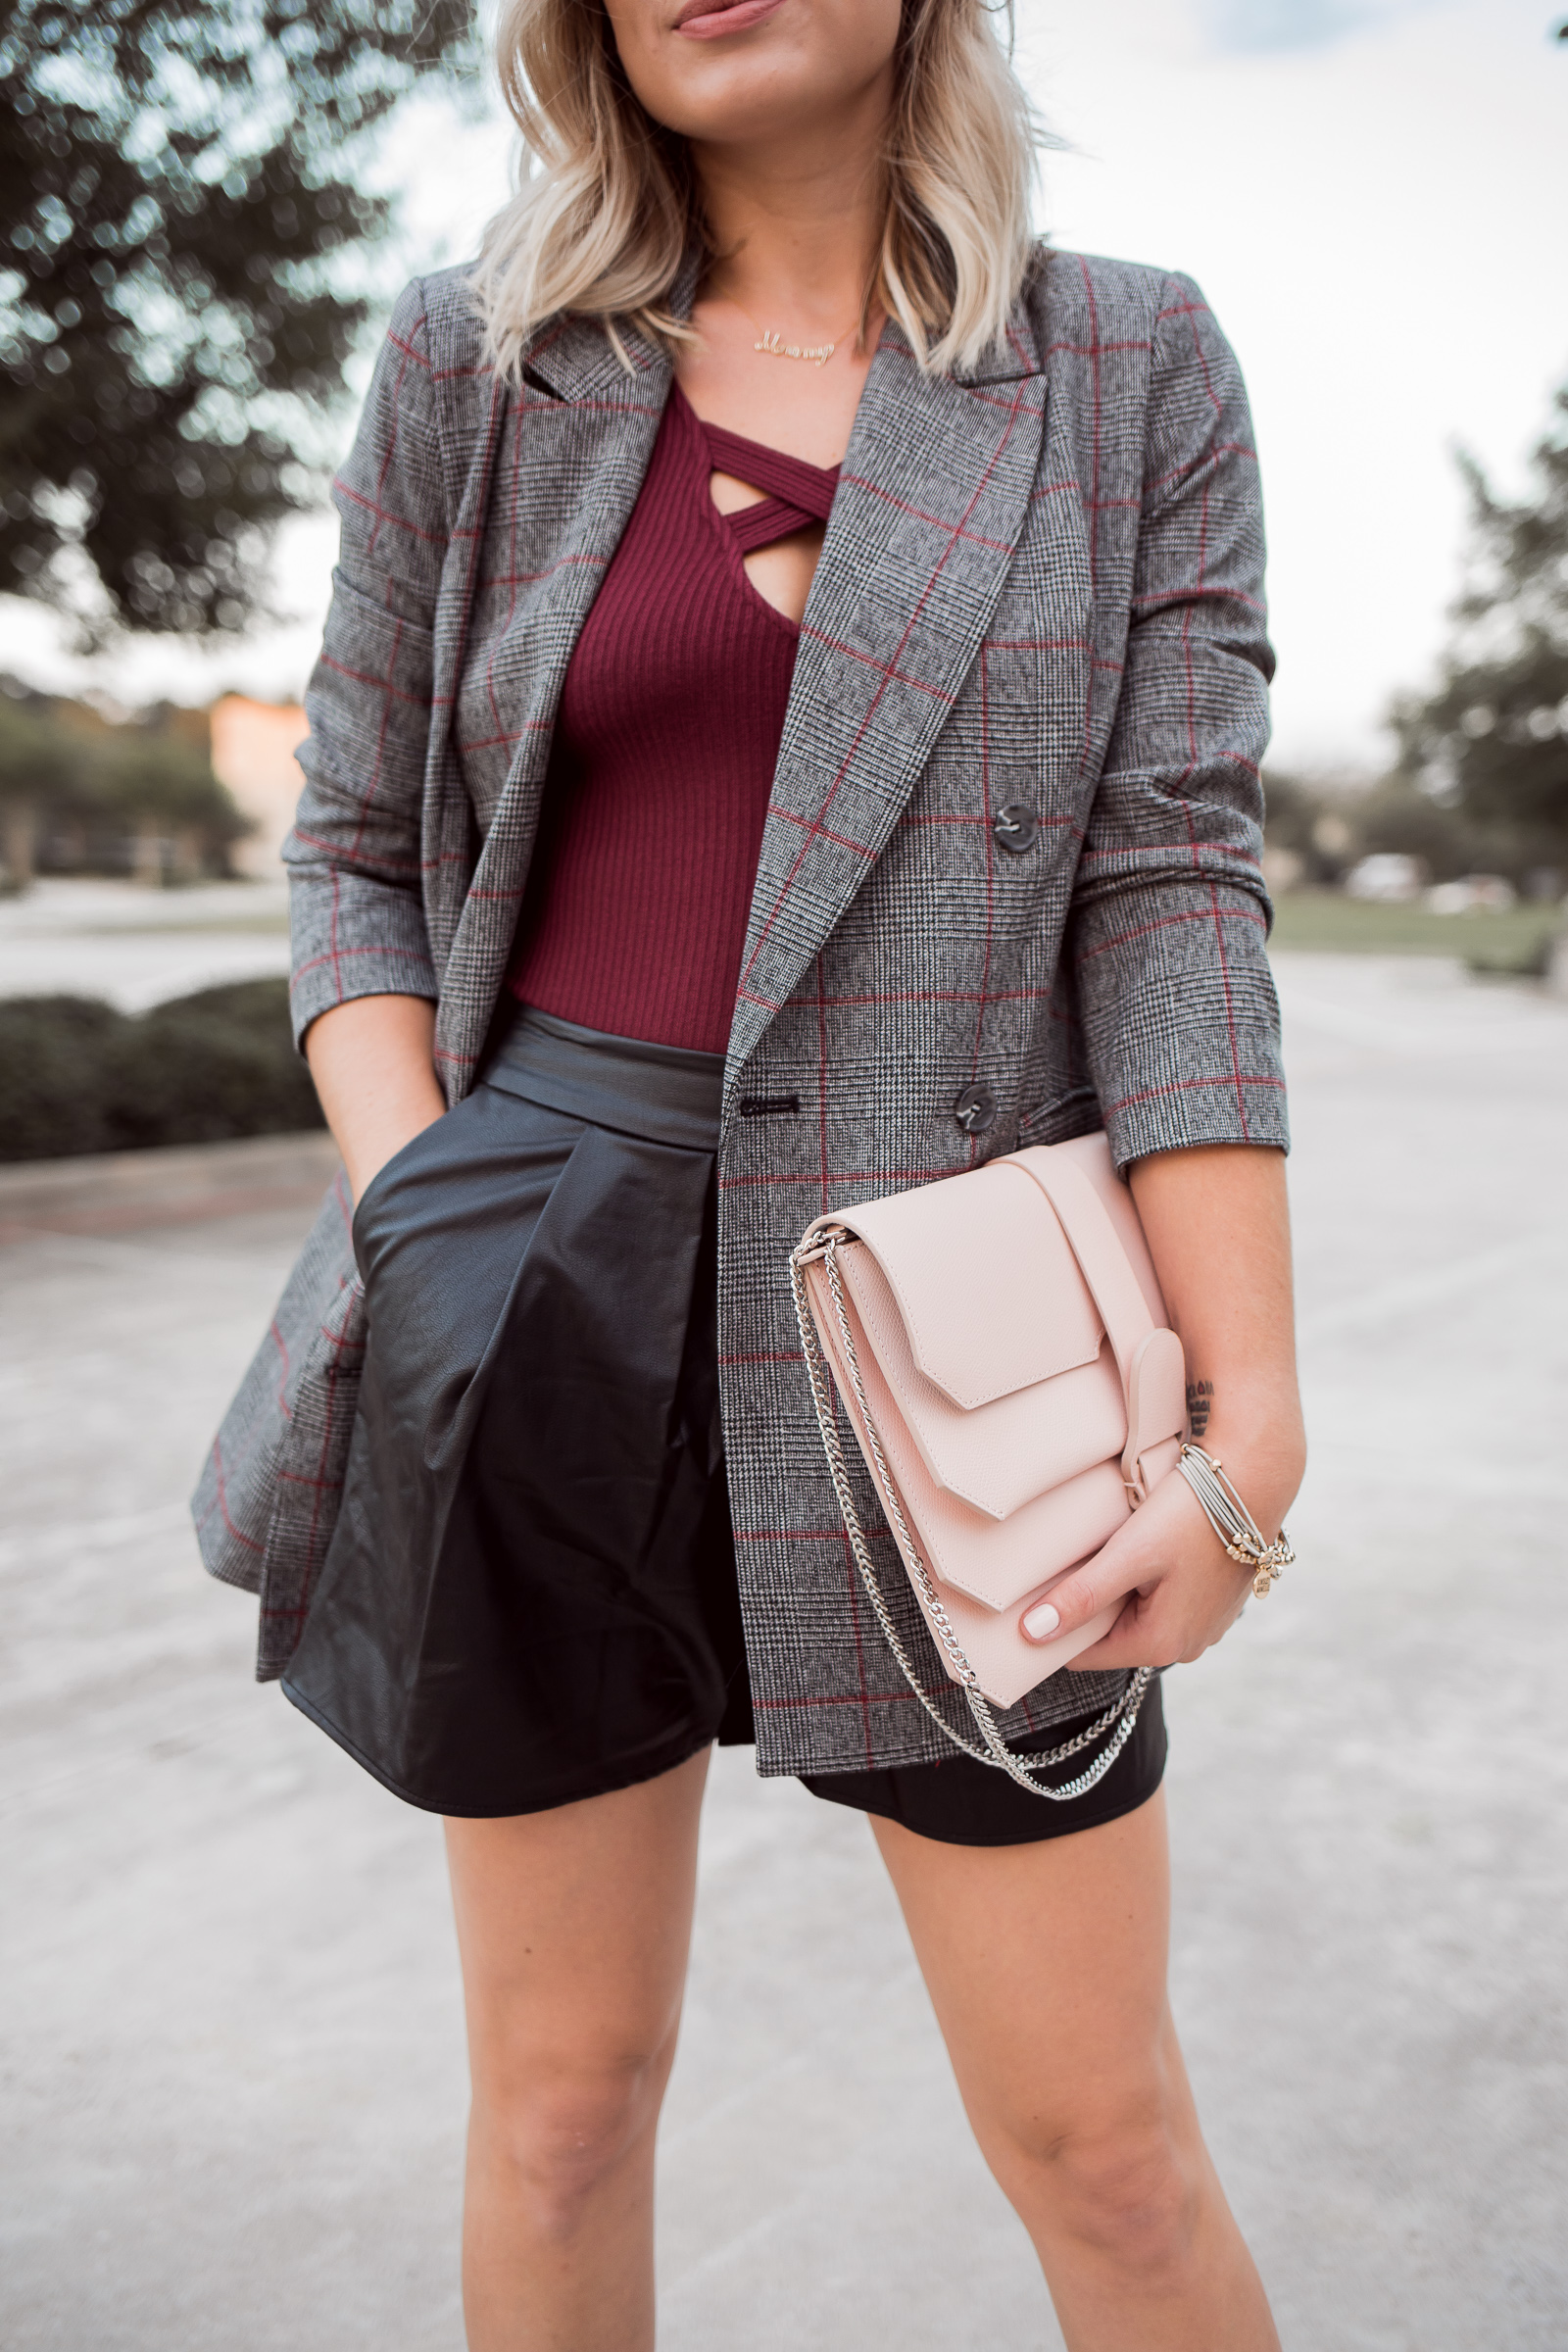 Houston Fashion blogger Uptown with Elly Brown wears a faux leather shorts with a blazer